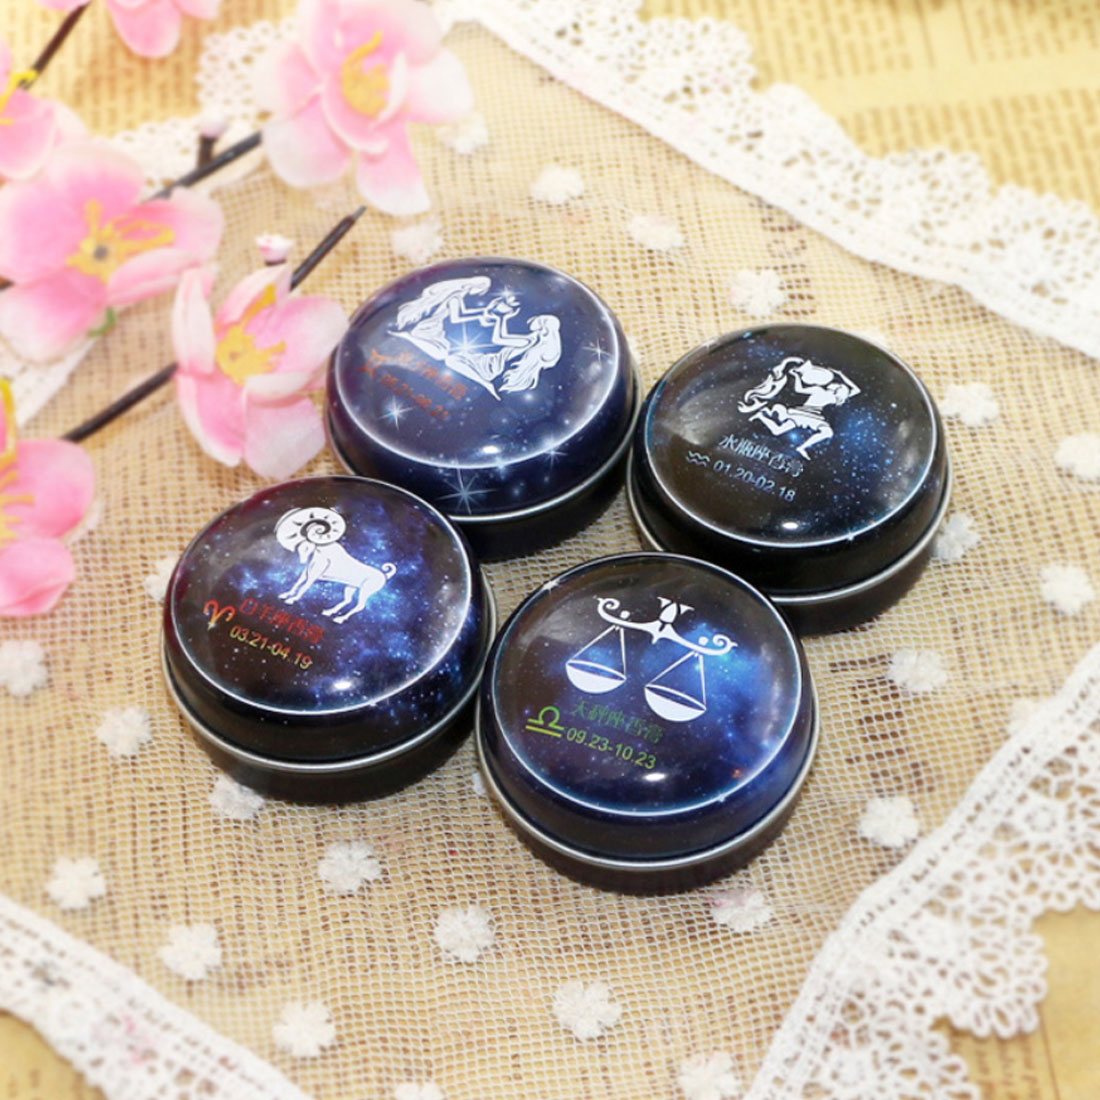 NEW Arrival 1 PC Unisex Magic Zodiac Fragrance 12 Signs Conss